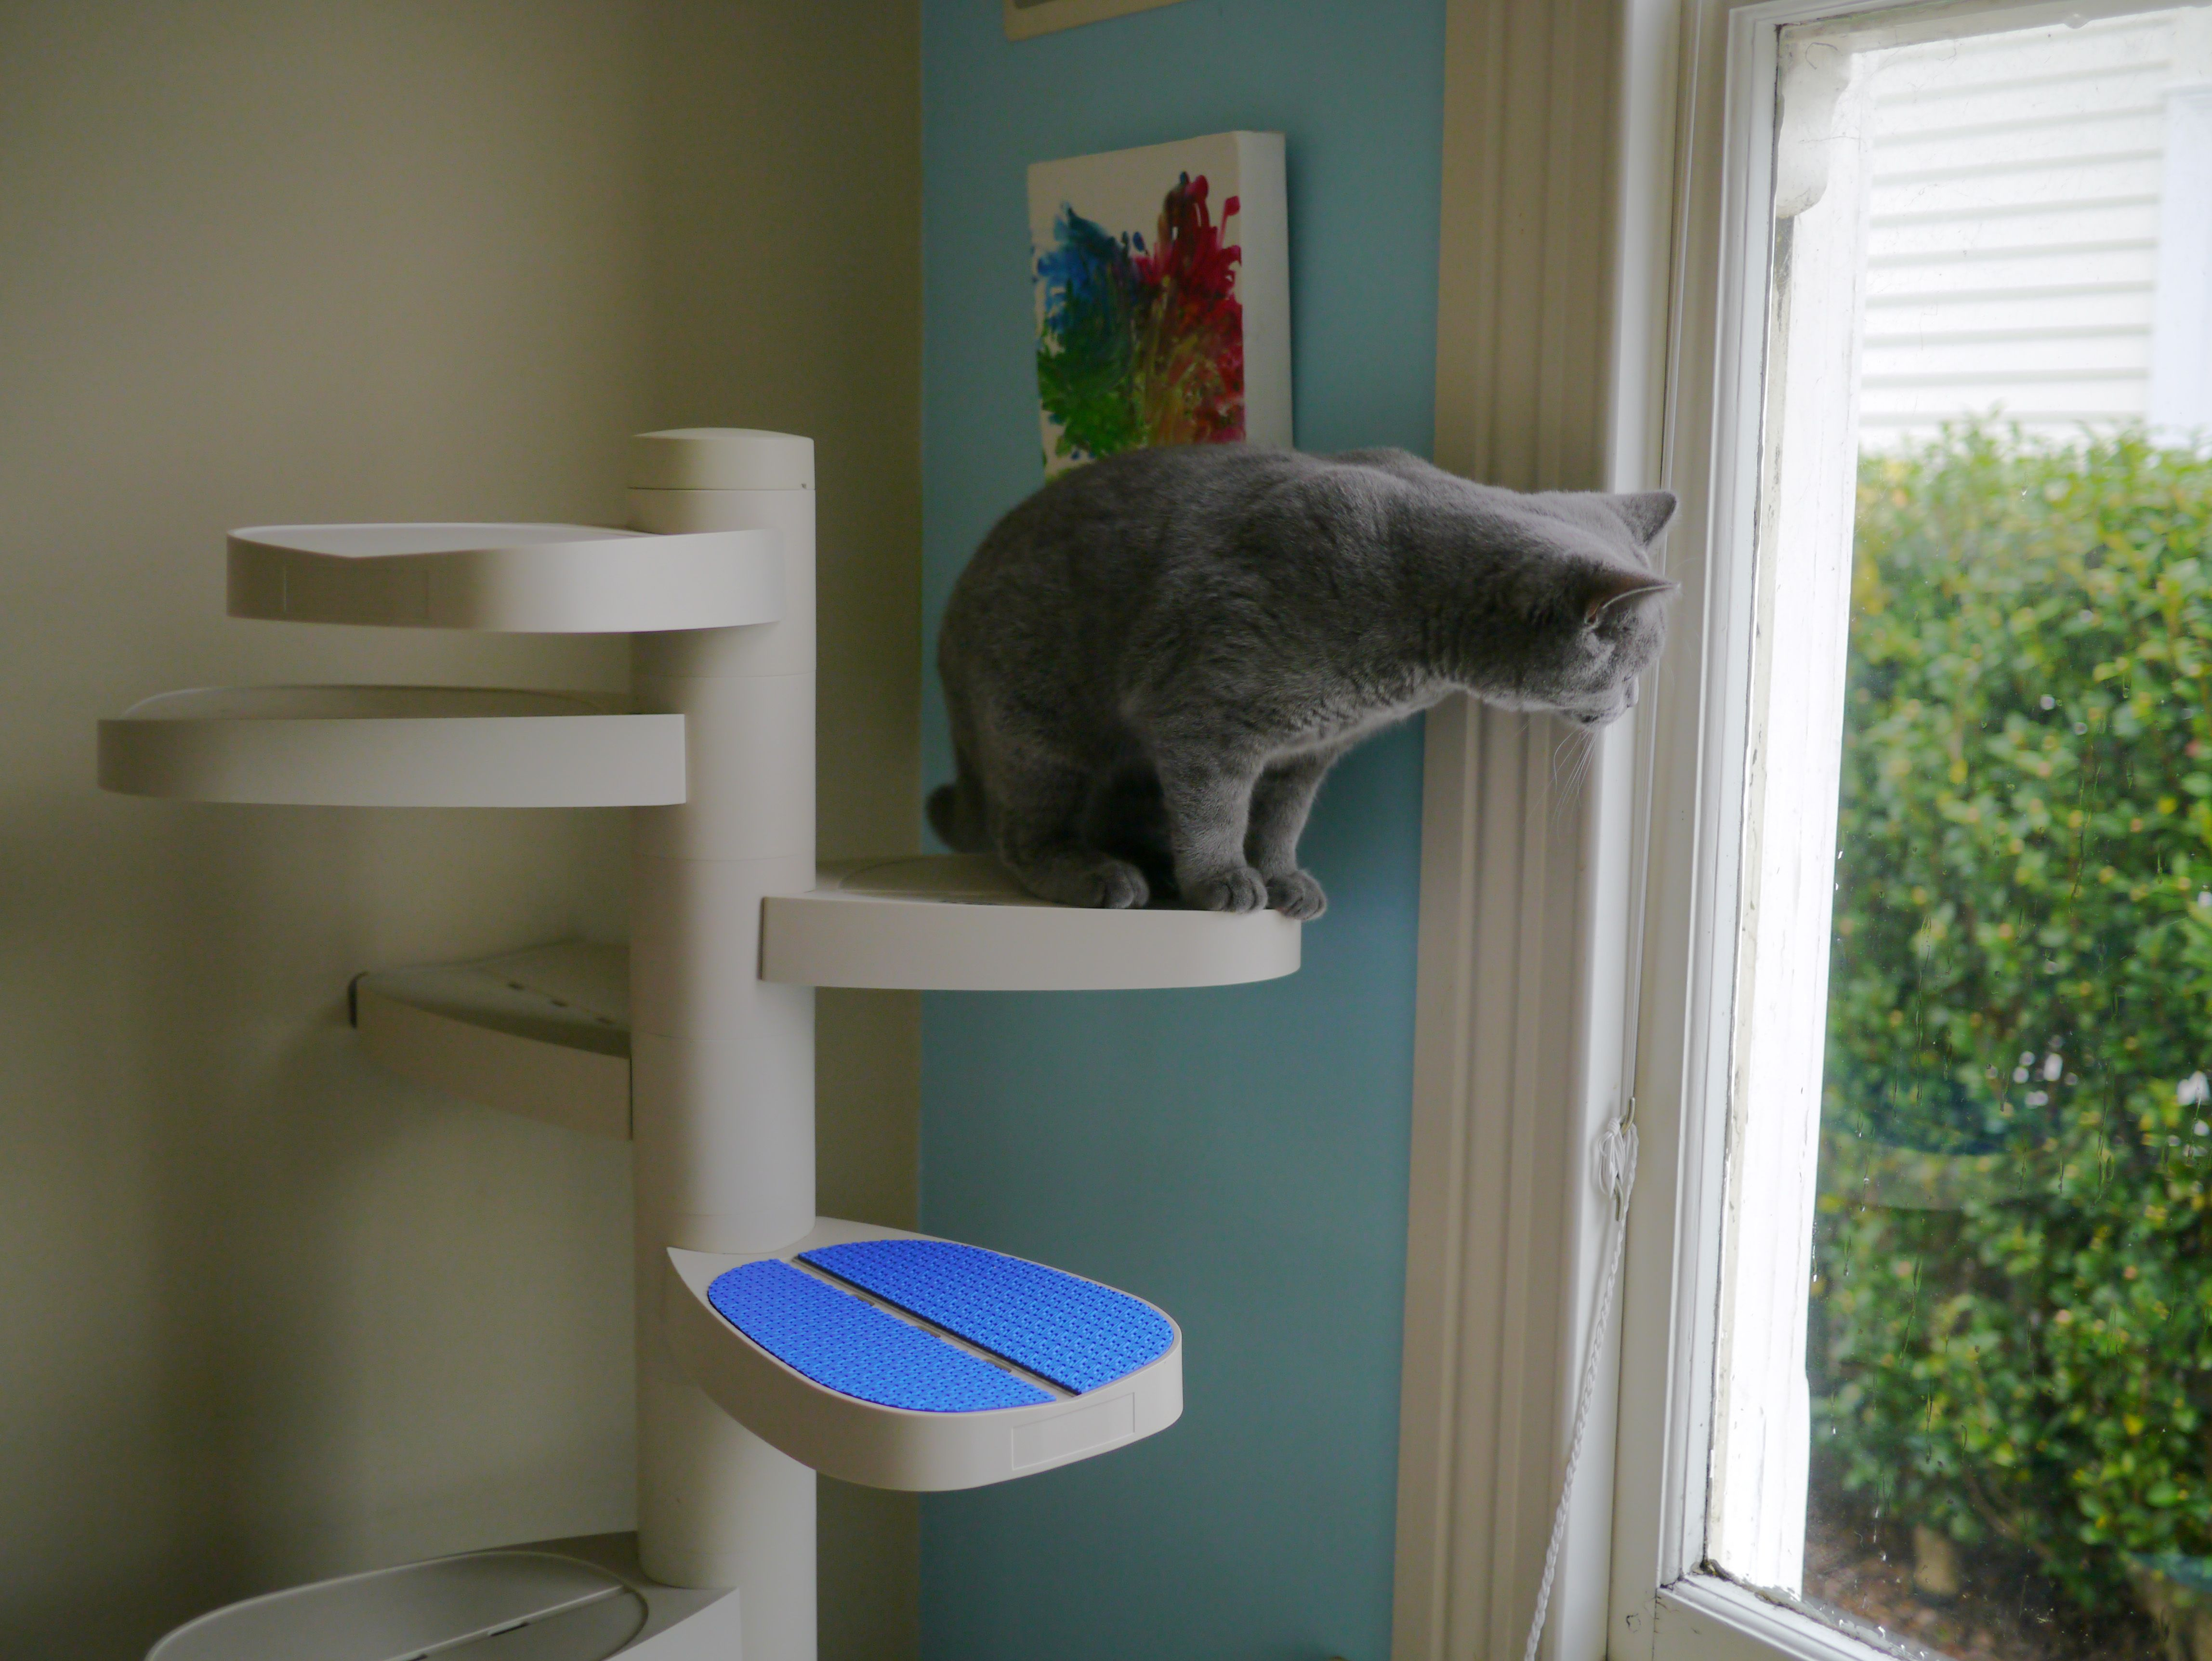 Monkee Tree Scalable Cat Ladder Can Help Your Cat Reach New